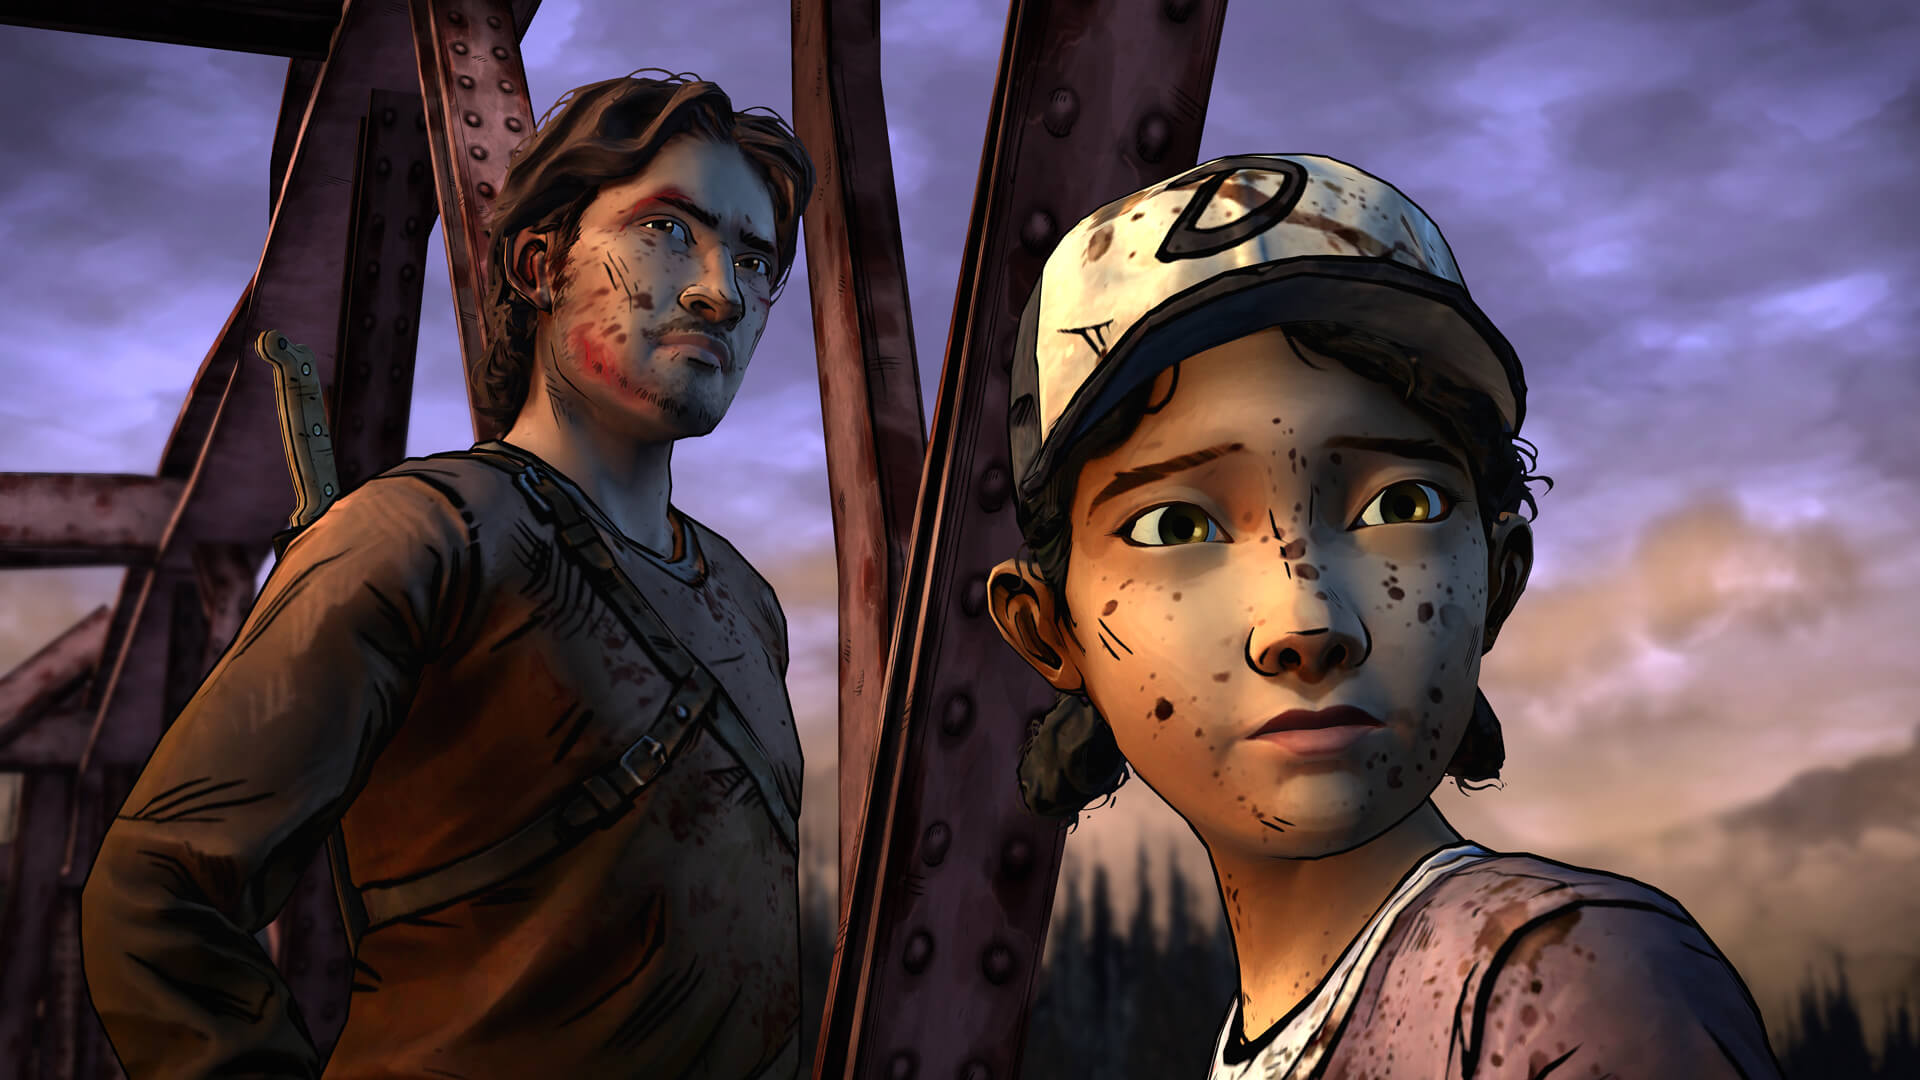 Luke and Clementine from The Walking Dead Season Two